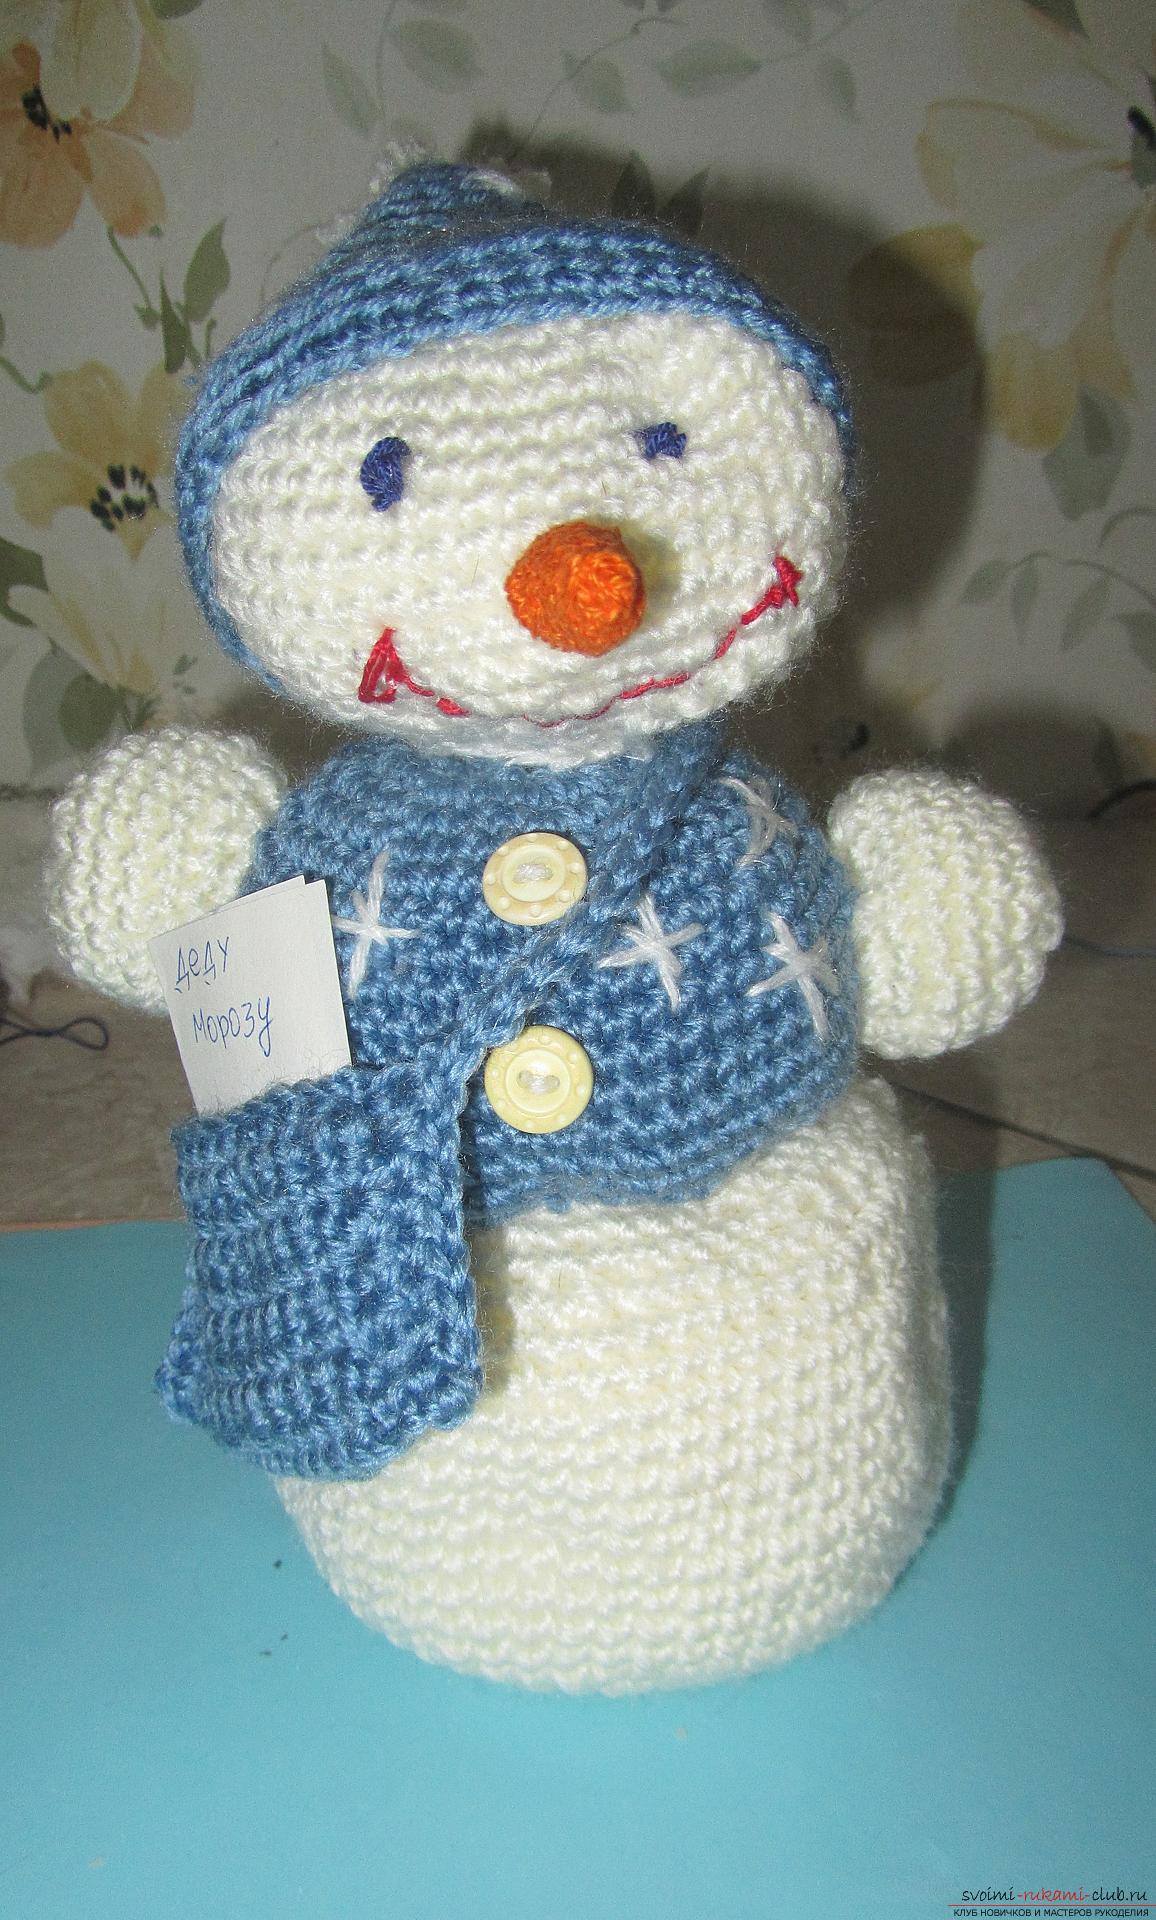 The master class will tell you how to create a New Year's craft - a crocheted snowman Stepu. Photo №62